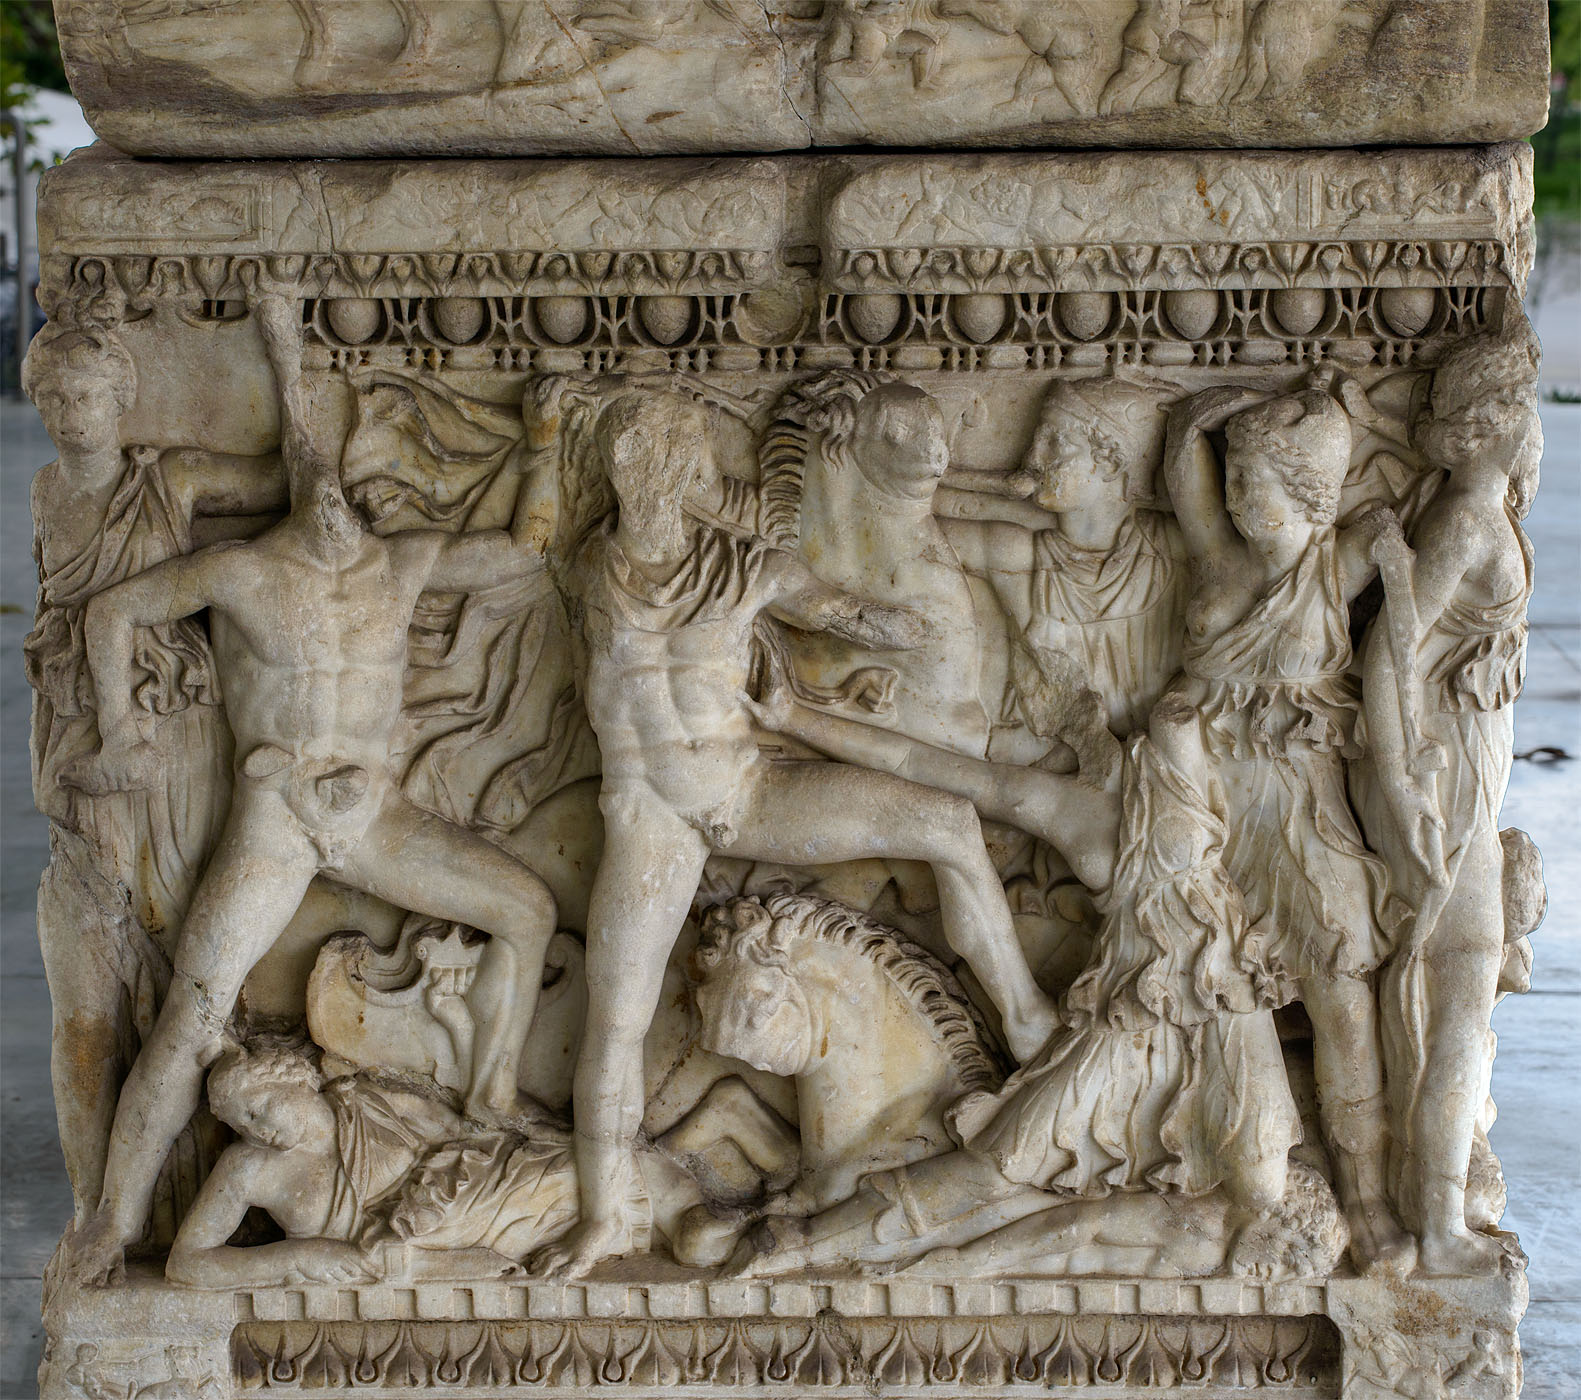 Attic sarcophagus with scenes of battles between the Greeks and the Amazons (relief of the right short side panel). Marble. 220—230 CE. Thessaloniki, Archaeological Museum